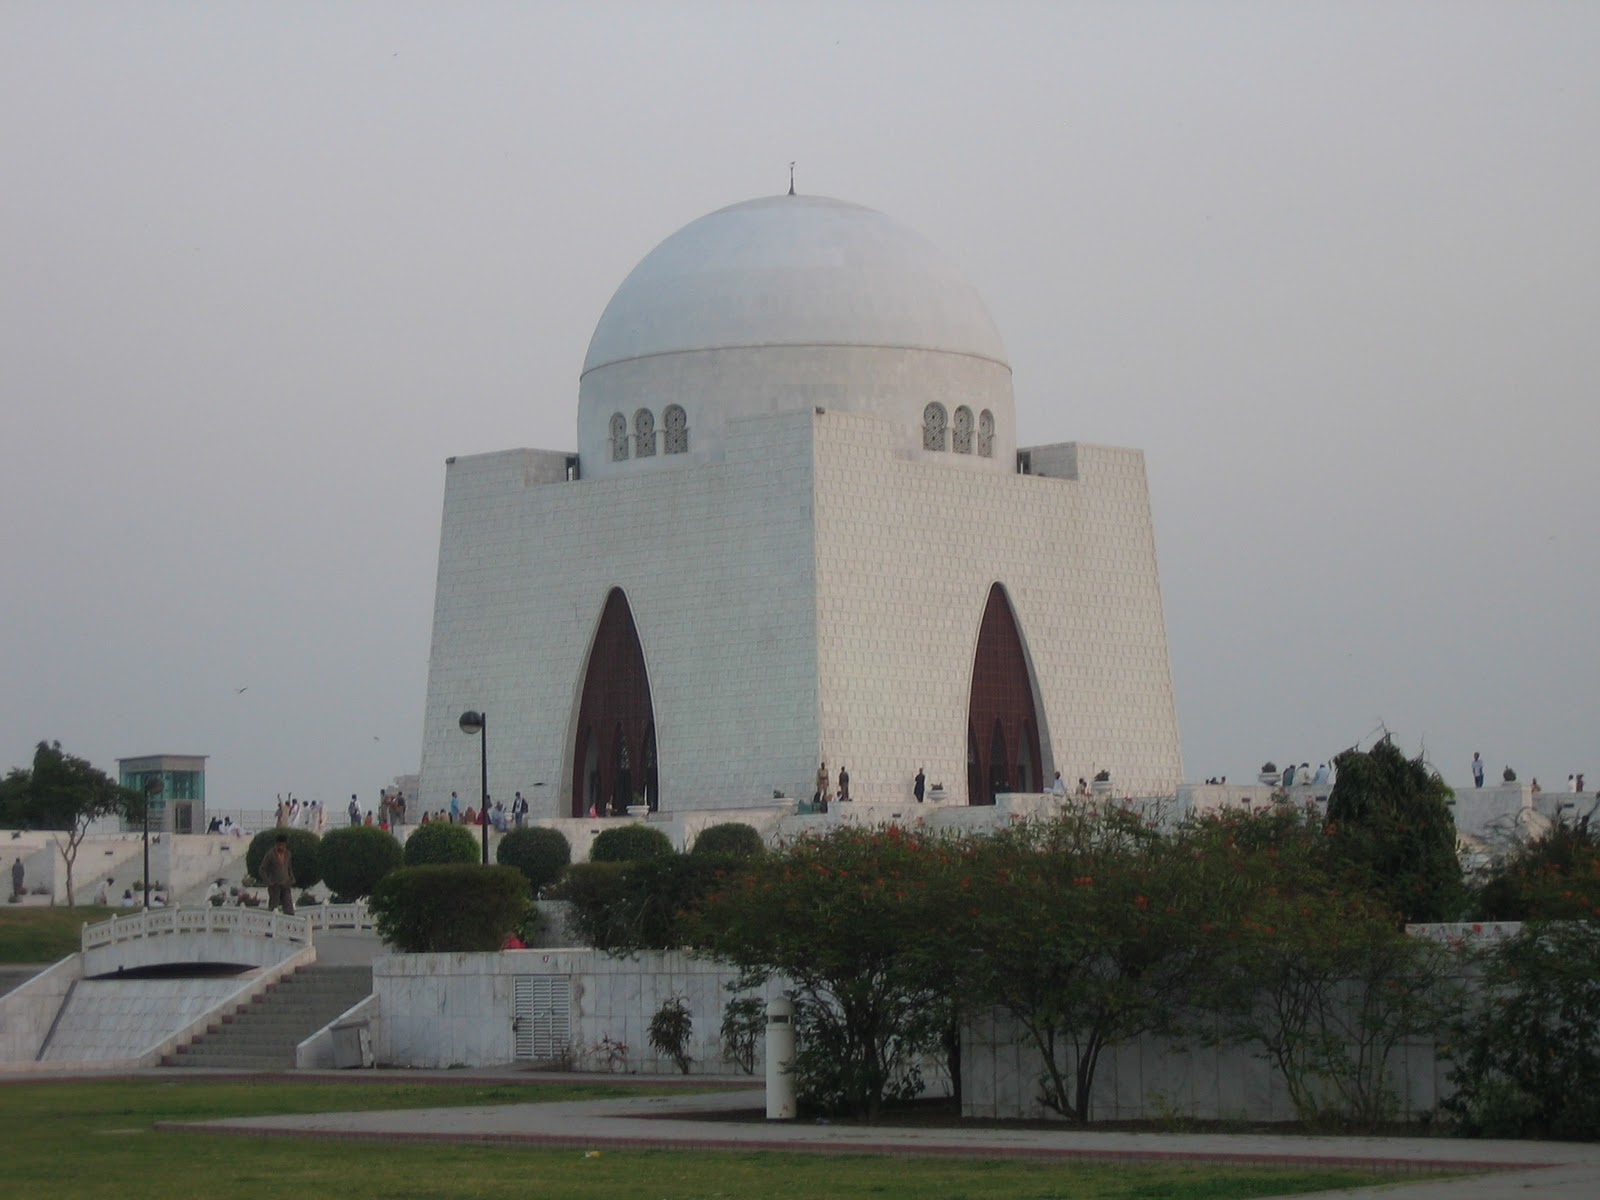 Mazar e quaid dating site